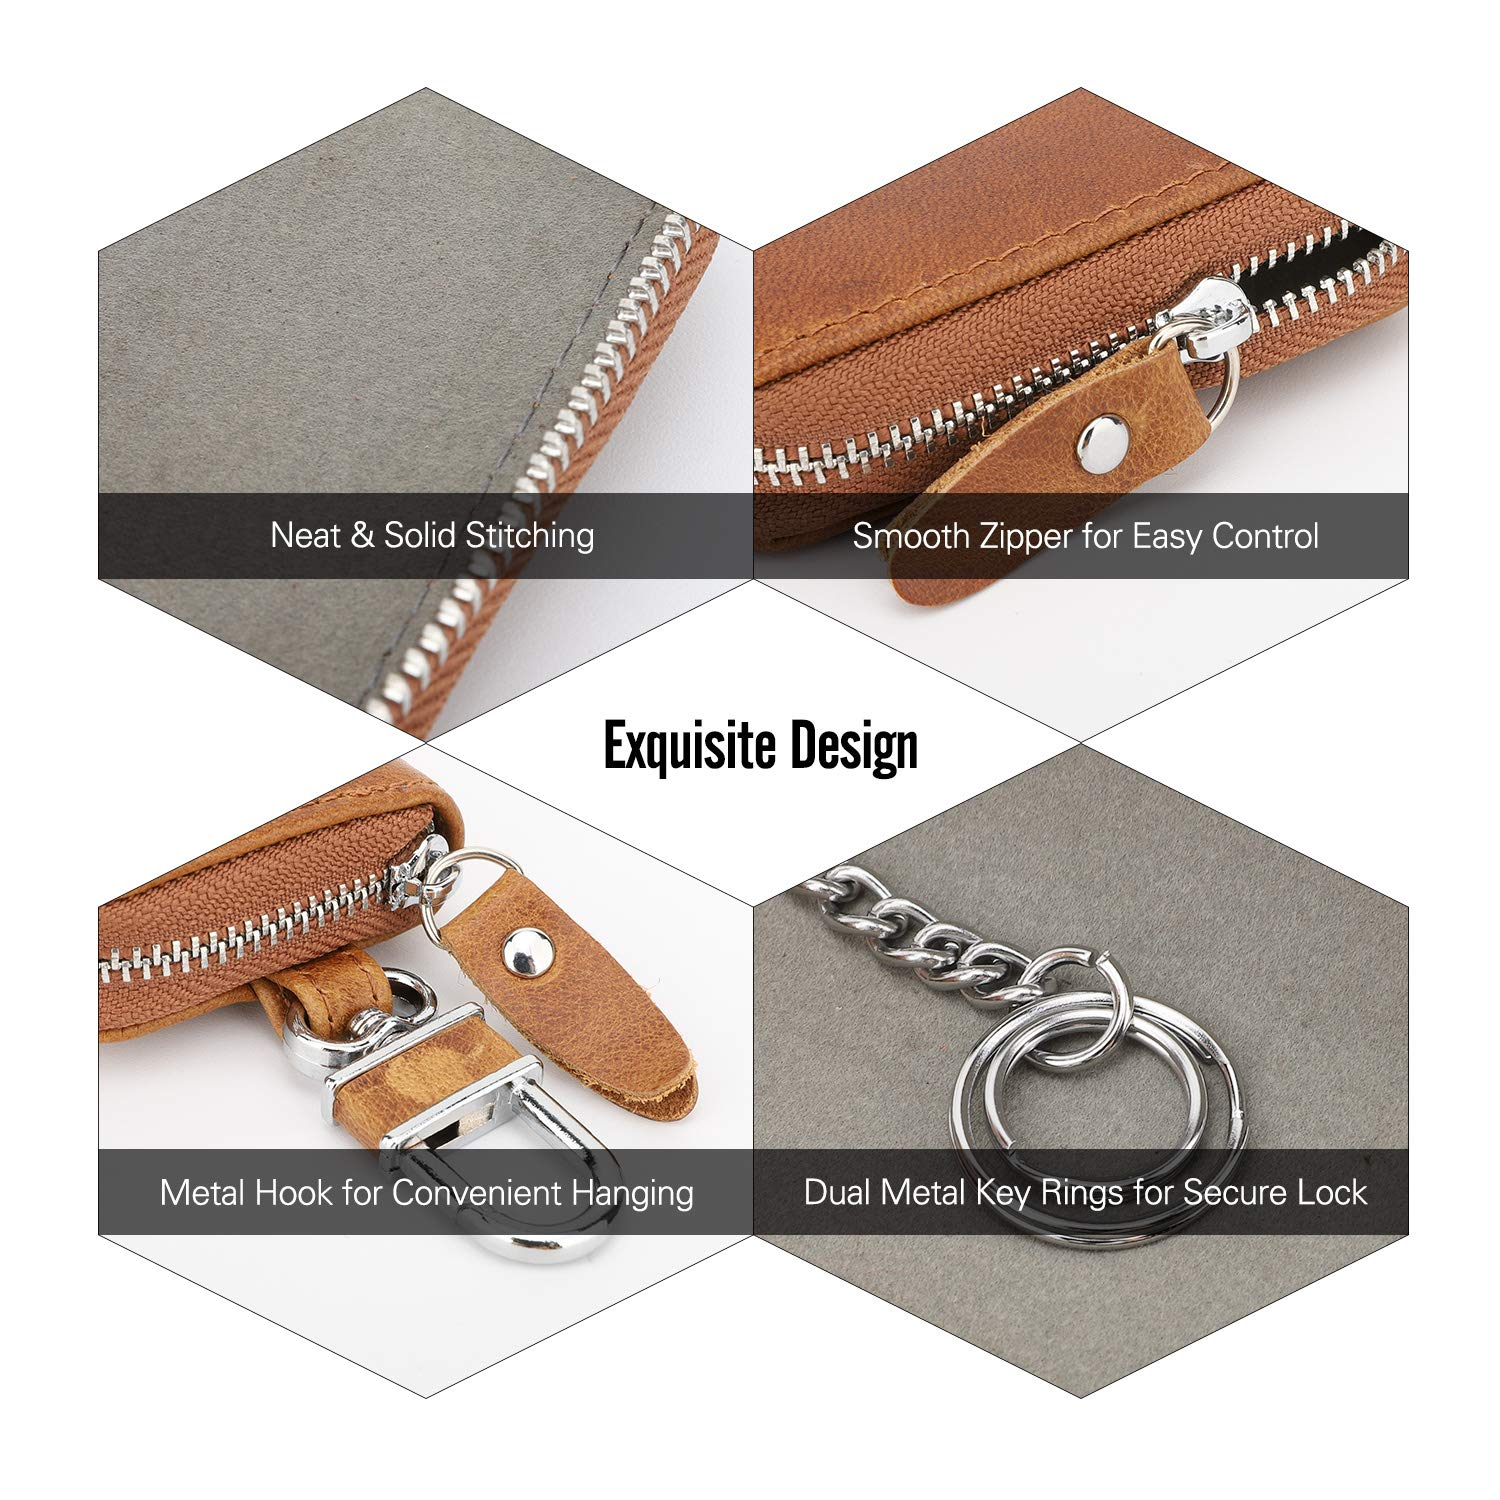 Retro Wax Leather Car Smart Keychain Coin Fob Punch Holder Wear-Resistant Key Zipper Bag with Metal Hook MoKo Car Key Case Support Remote Control Dark Coffee